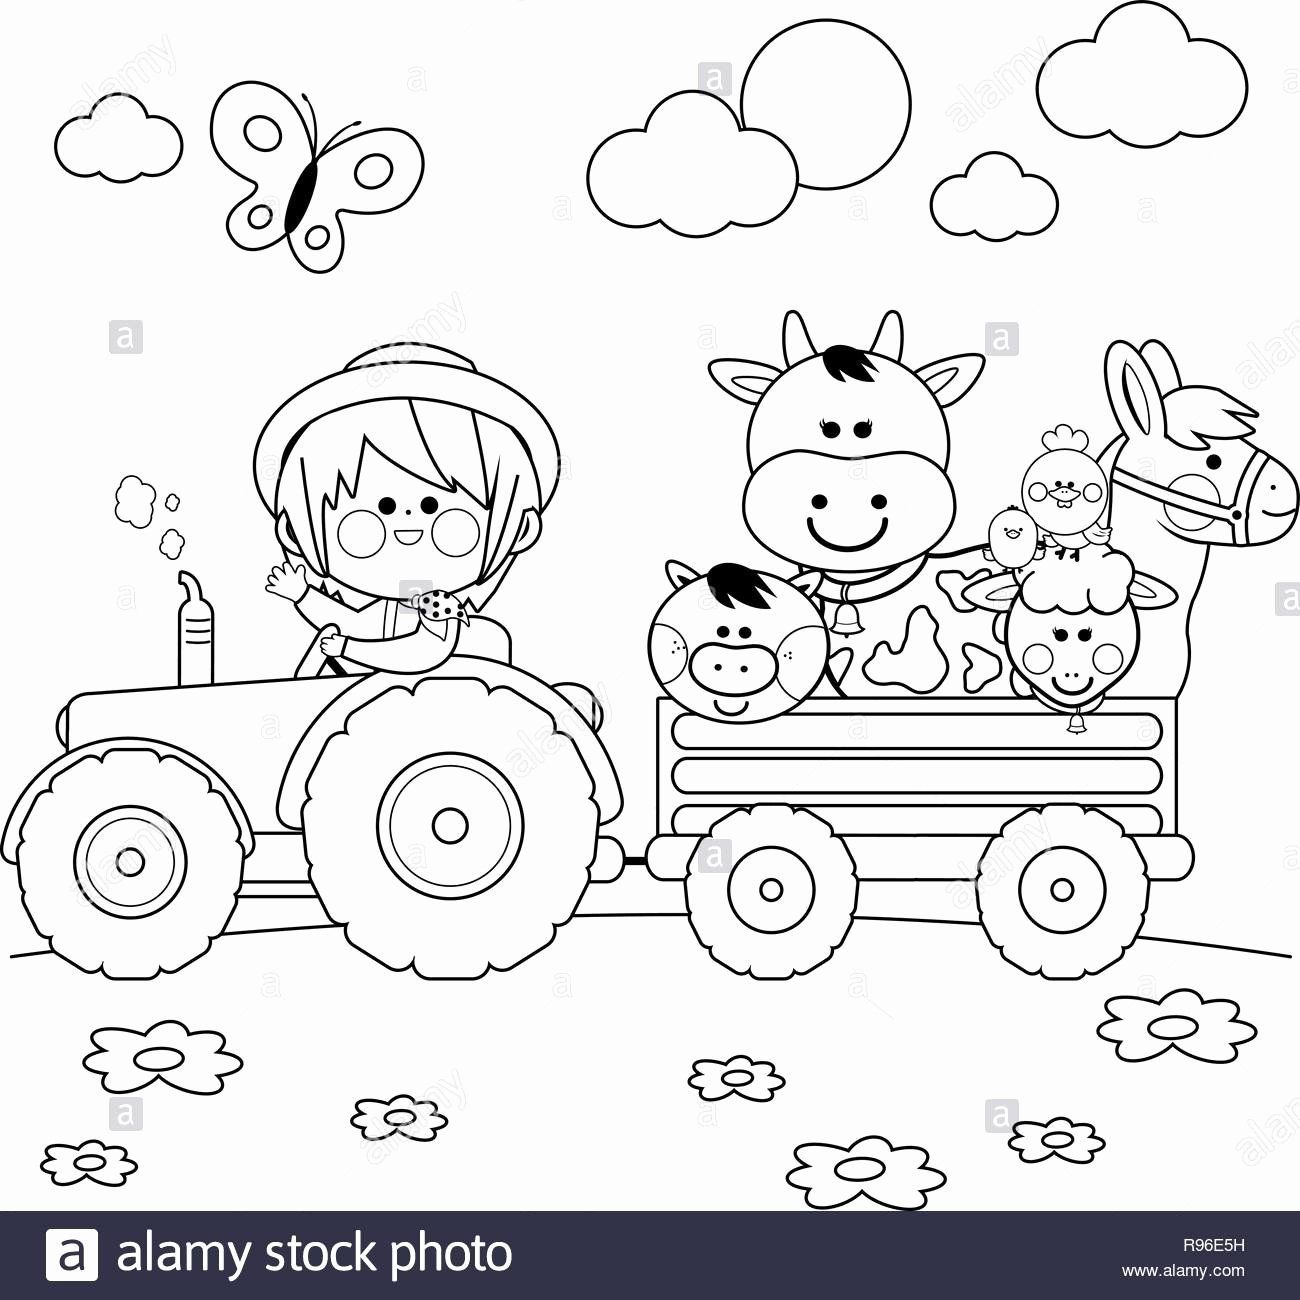 Pin By Rosi Williams On Obrazky Tractor Coloring Pages Farm Coloring Pages Animal Coloring Books